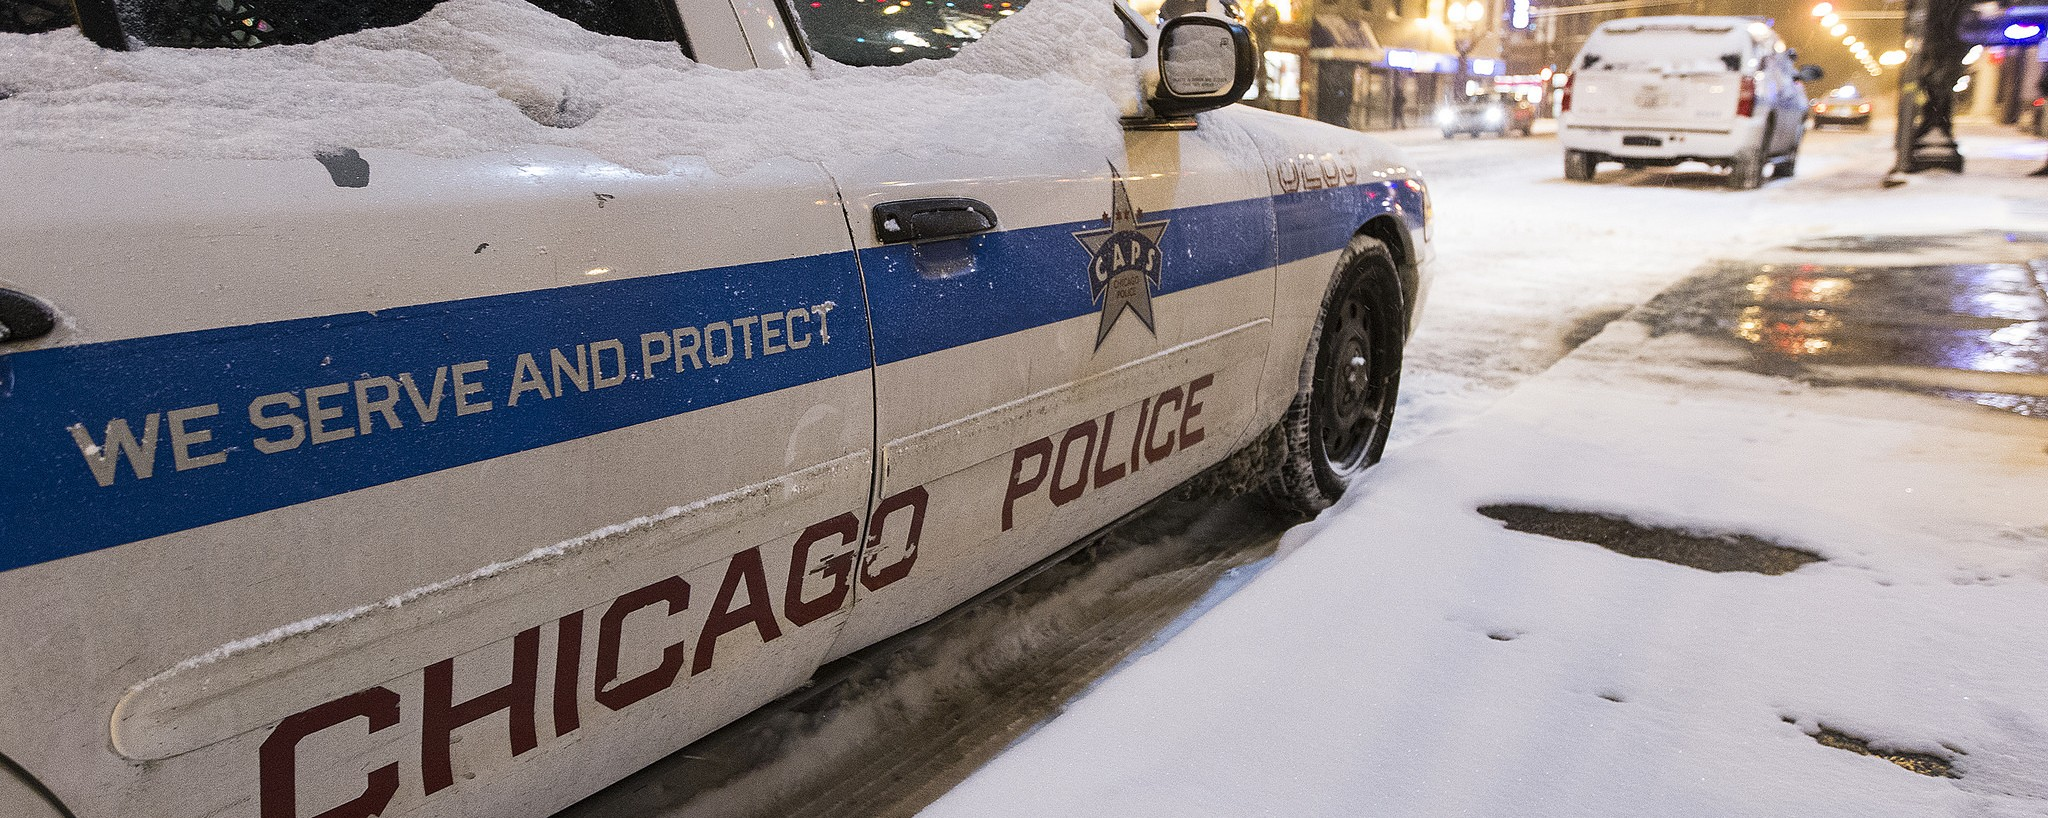 Protesters Denounce Detainment and Abuse at Alleged Chicago Police 'Black Site'